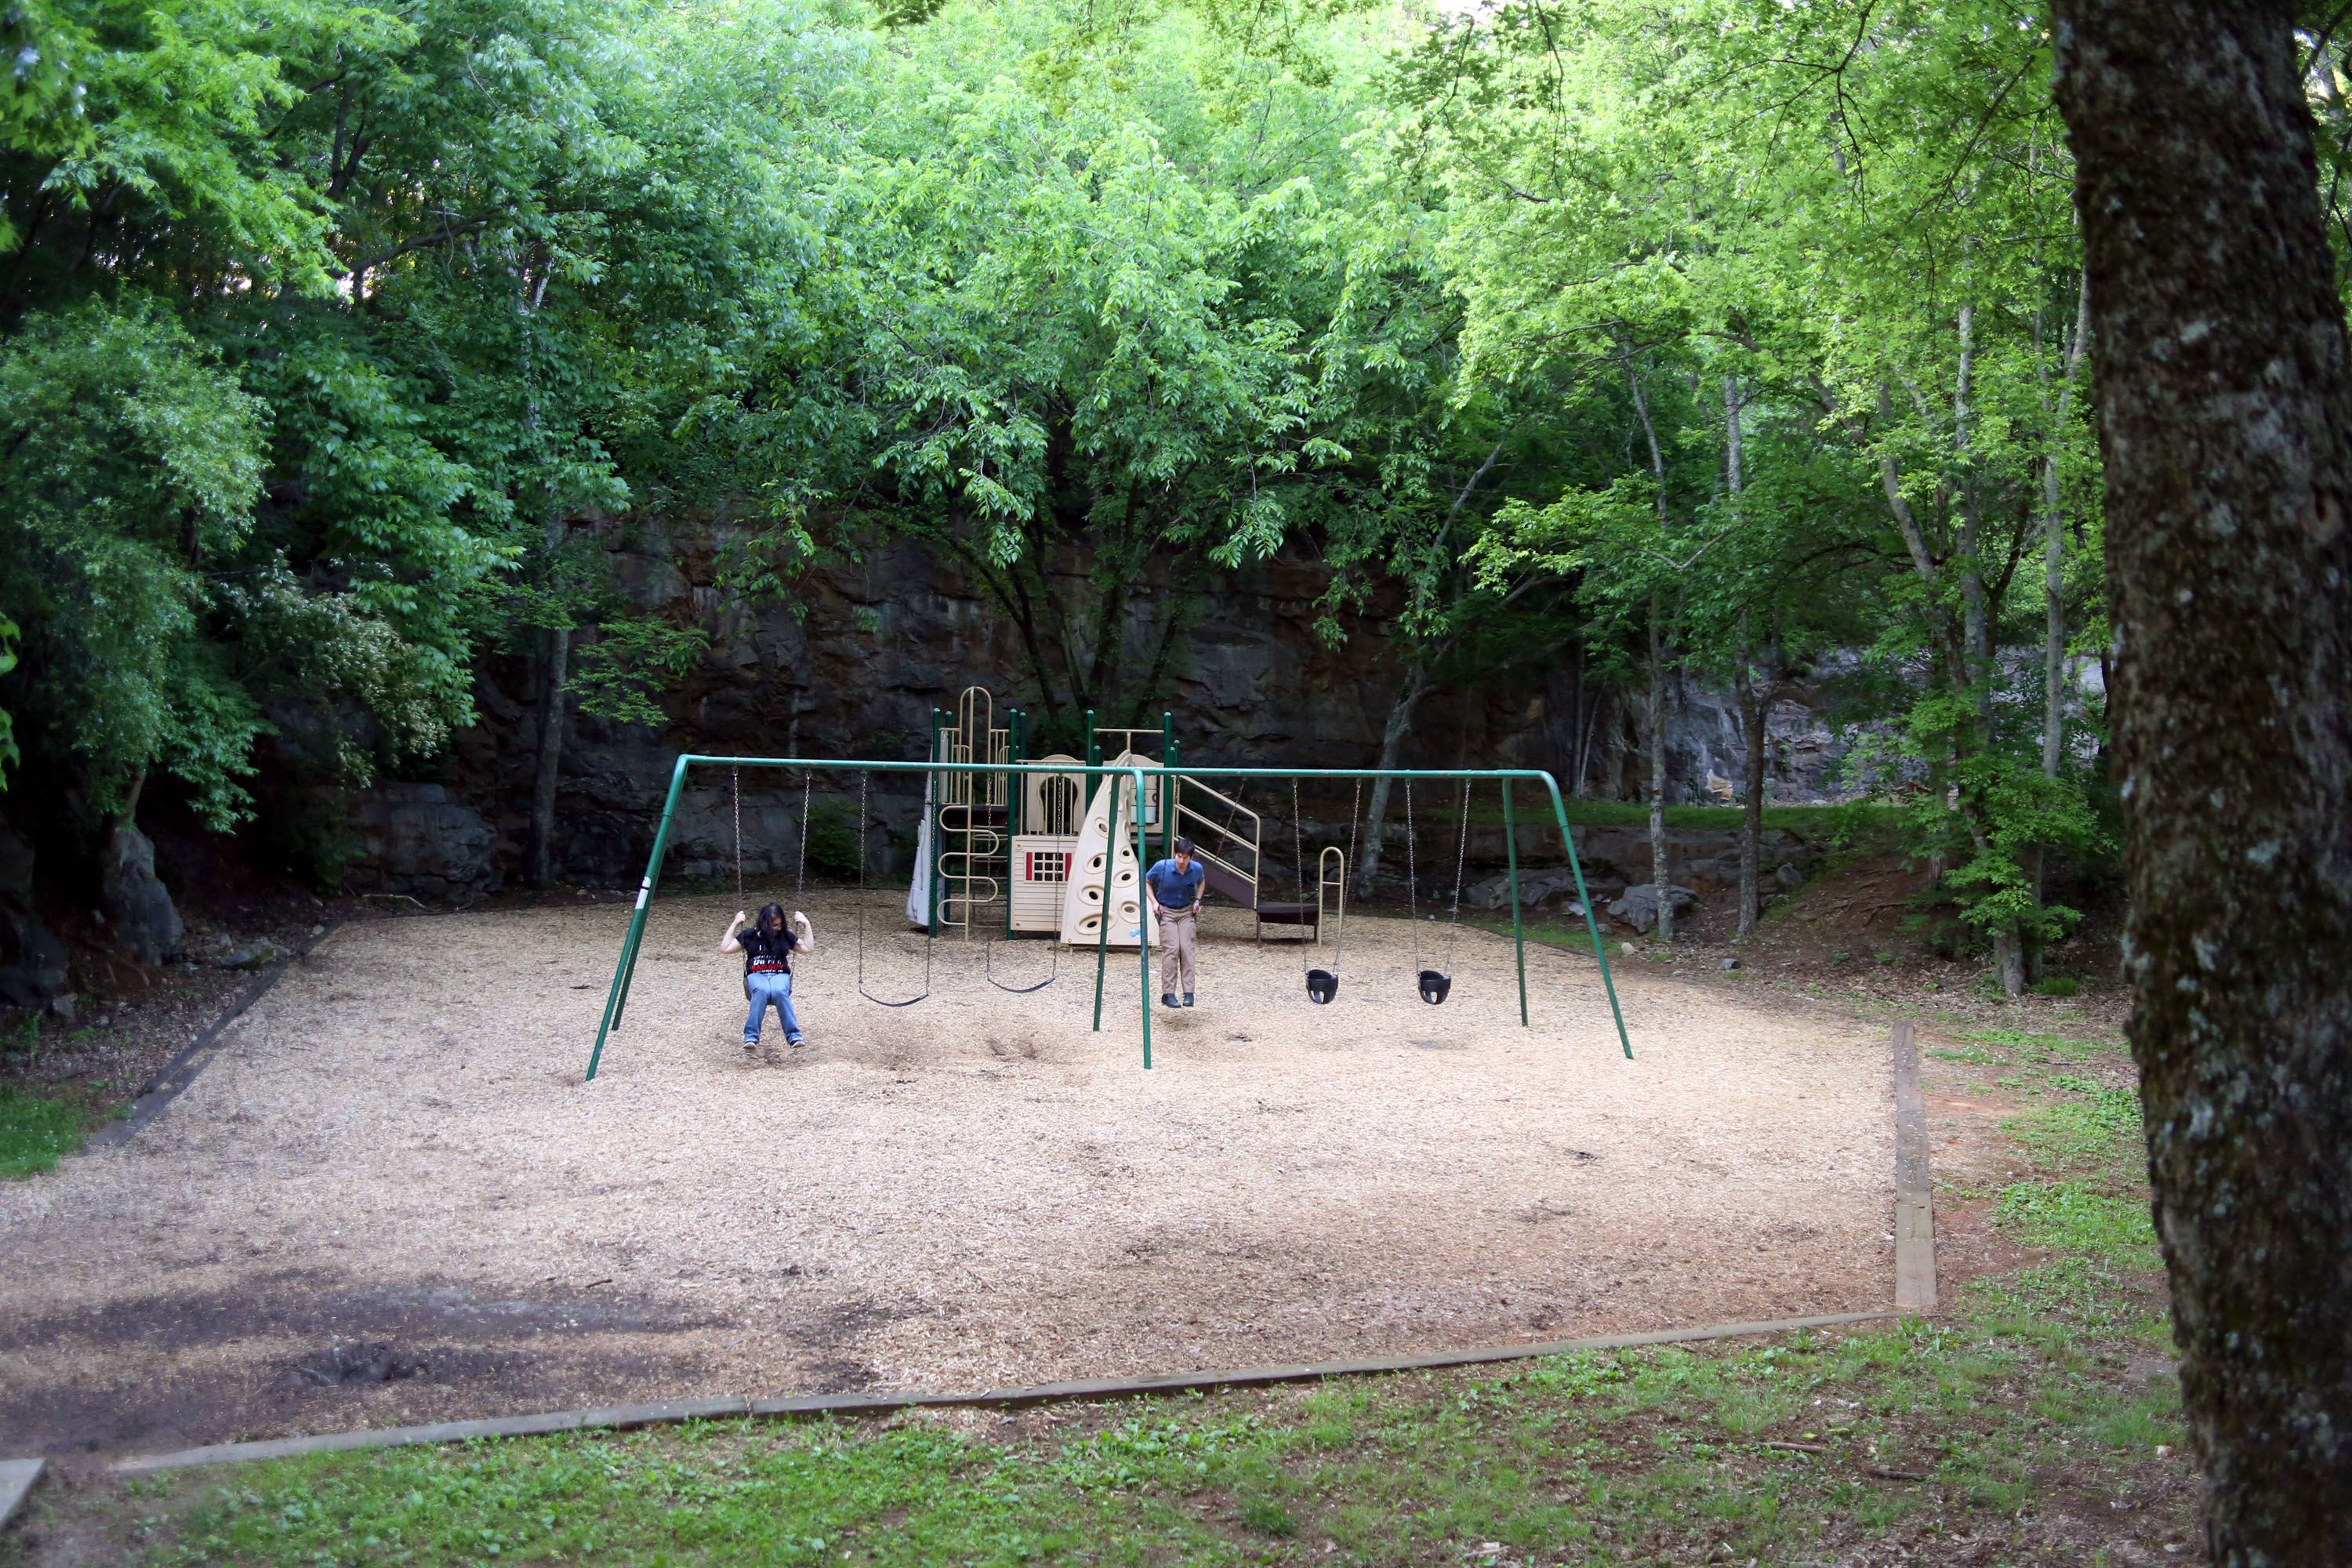 A photo of the Dead Children's playground